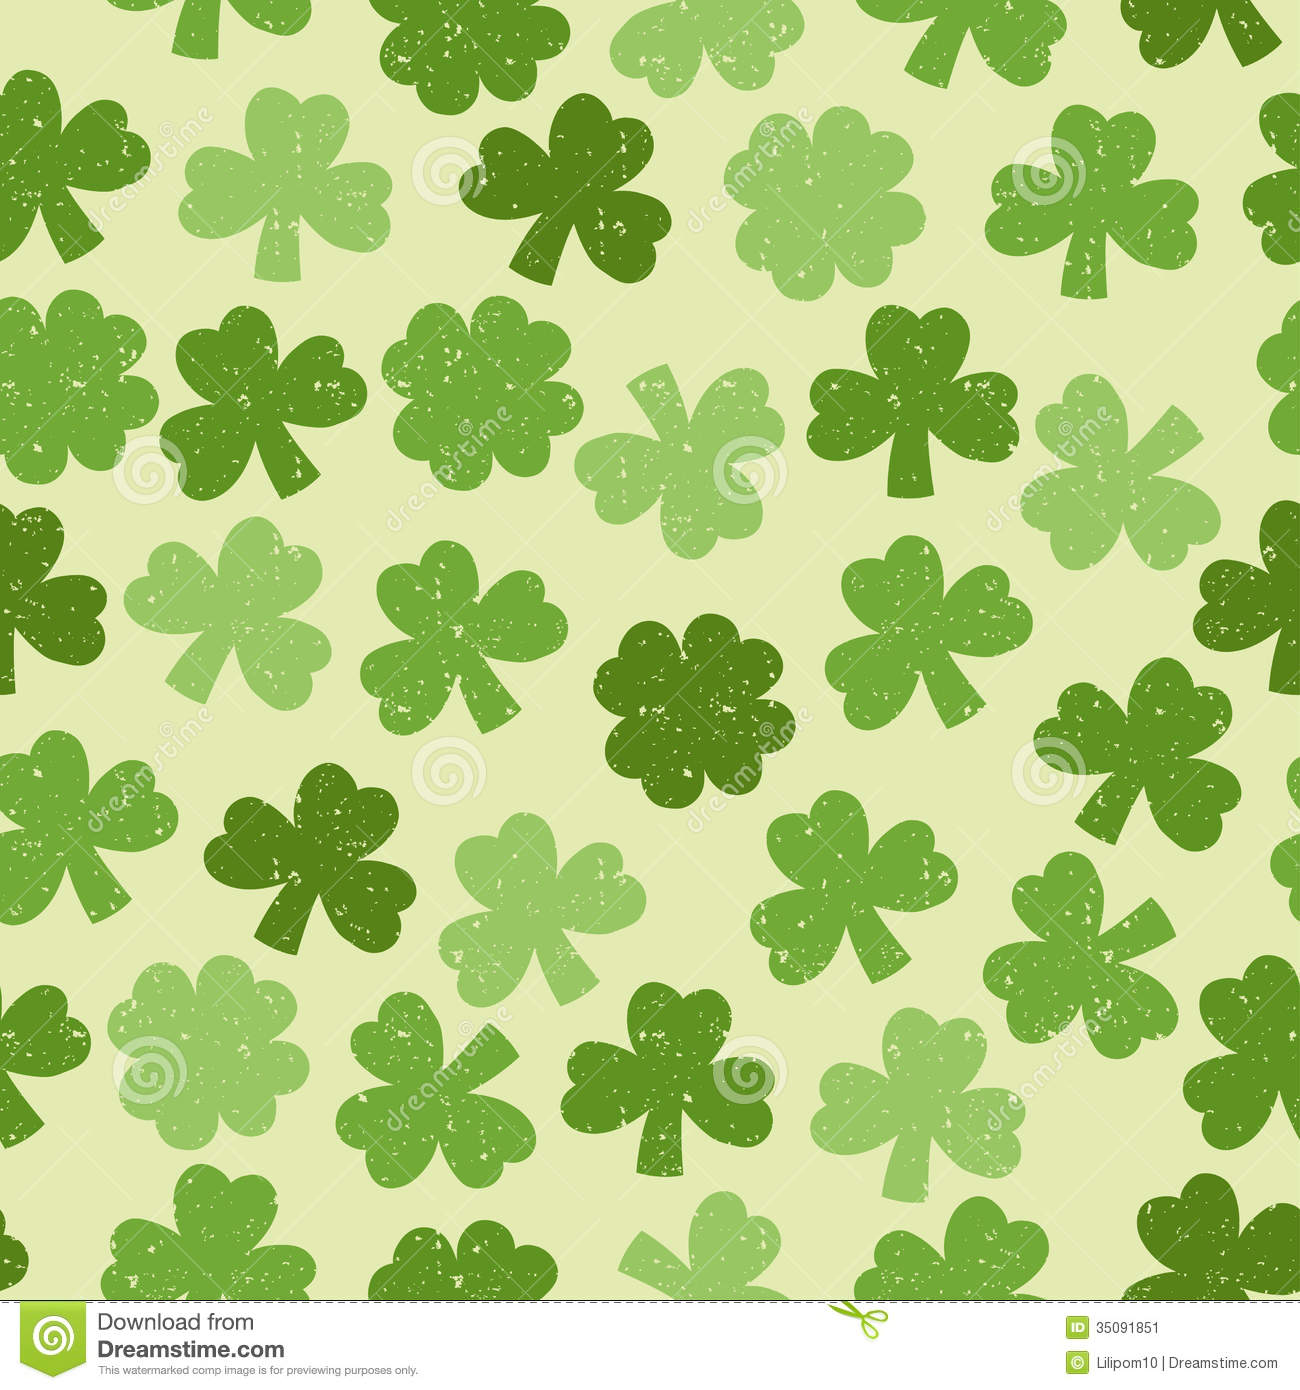 shamrock pattern wallpaper 1366x768 - photo #18